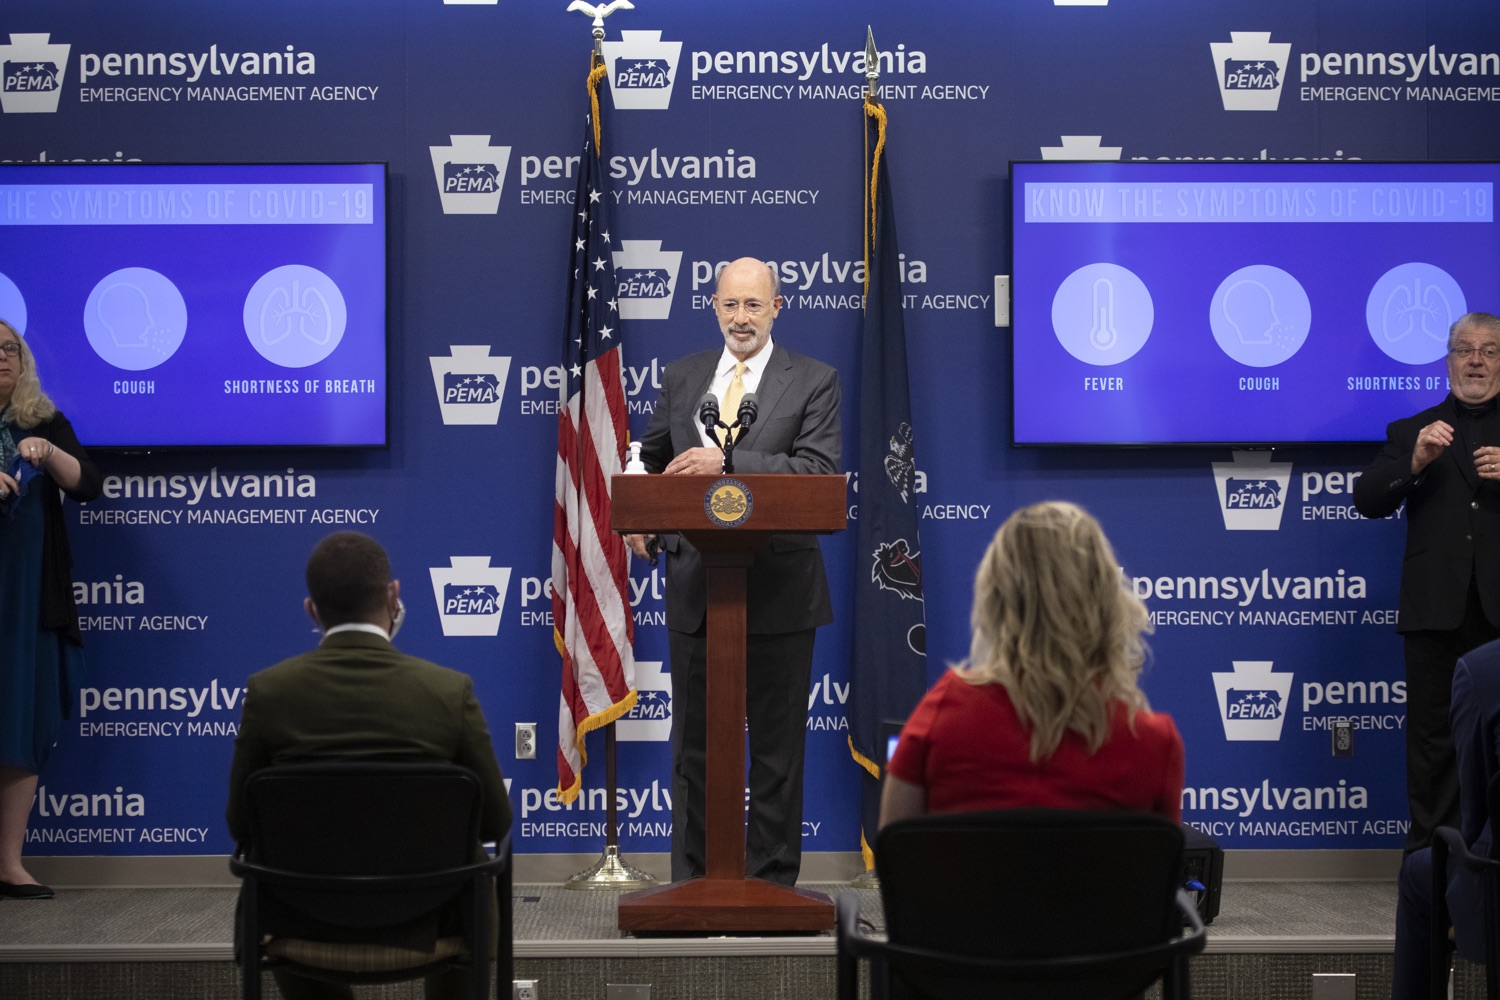 """<a href=""""https://filesource.wostreaming.net/commonwealthofpa/photo/18201_gov_orasure_dz_015.jpg"""" target=""""_blank"""">⇣Download Photo<br></a>Pennsylvania Governor Tom Wolf speaking to the press.  Today, Governor Tom Wolf announced that OraSure Technologies Inc., a developer and manufacturer of rapid diagnostic tests, collection and stabilization devices headquartered in Northampton County, will expand its manufacturing operations in the Lehigh Valley, creating 177 new, full-time jobs and retaining 233 jobs.  Harrisburg, PA  August 11, 2020"""